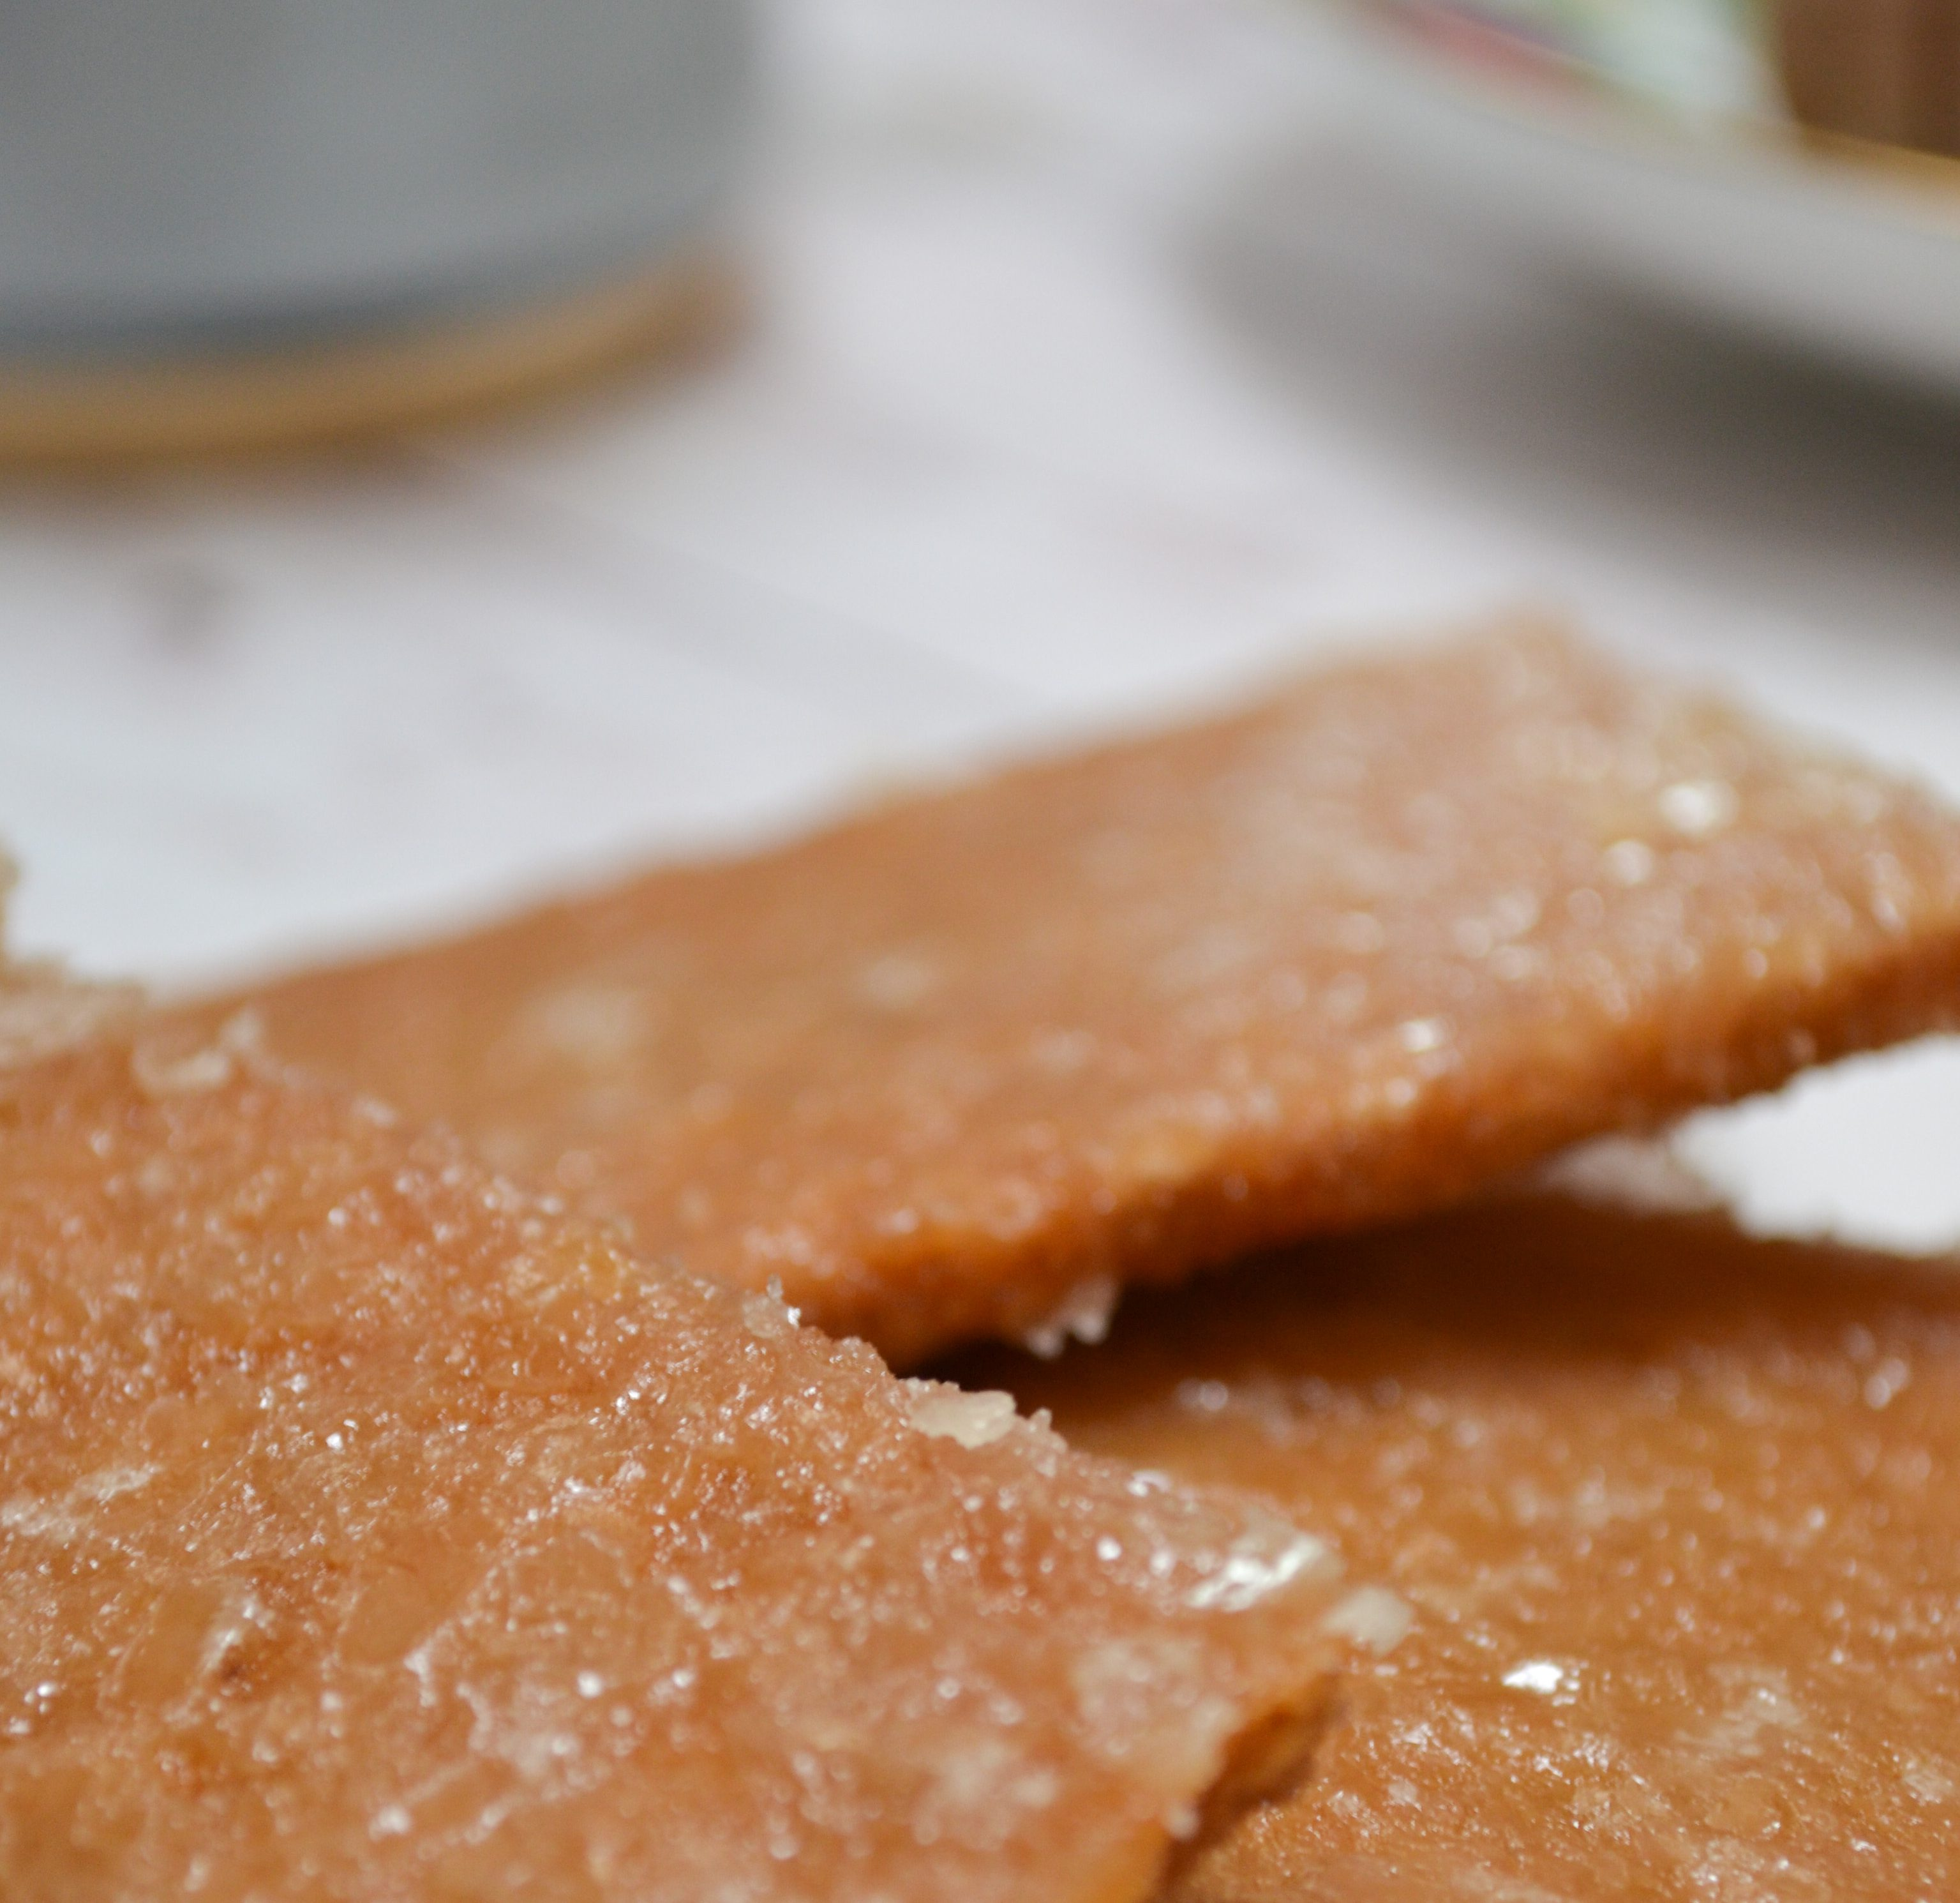 This Graham Cracker Cookie Recipe is amazingly good and very easy to make! Great with your coffee/tea and an ice cream topping.